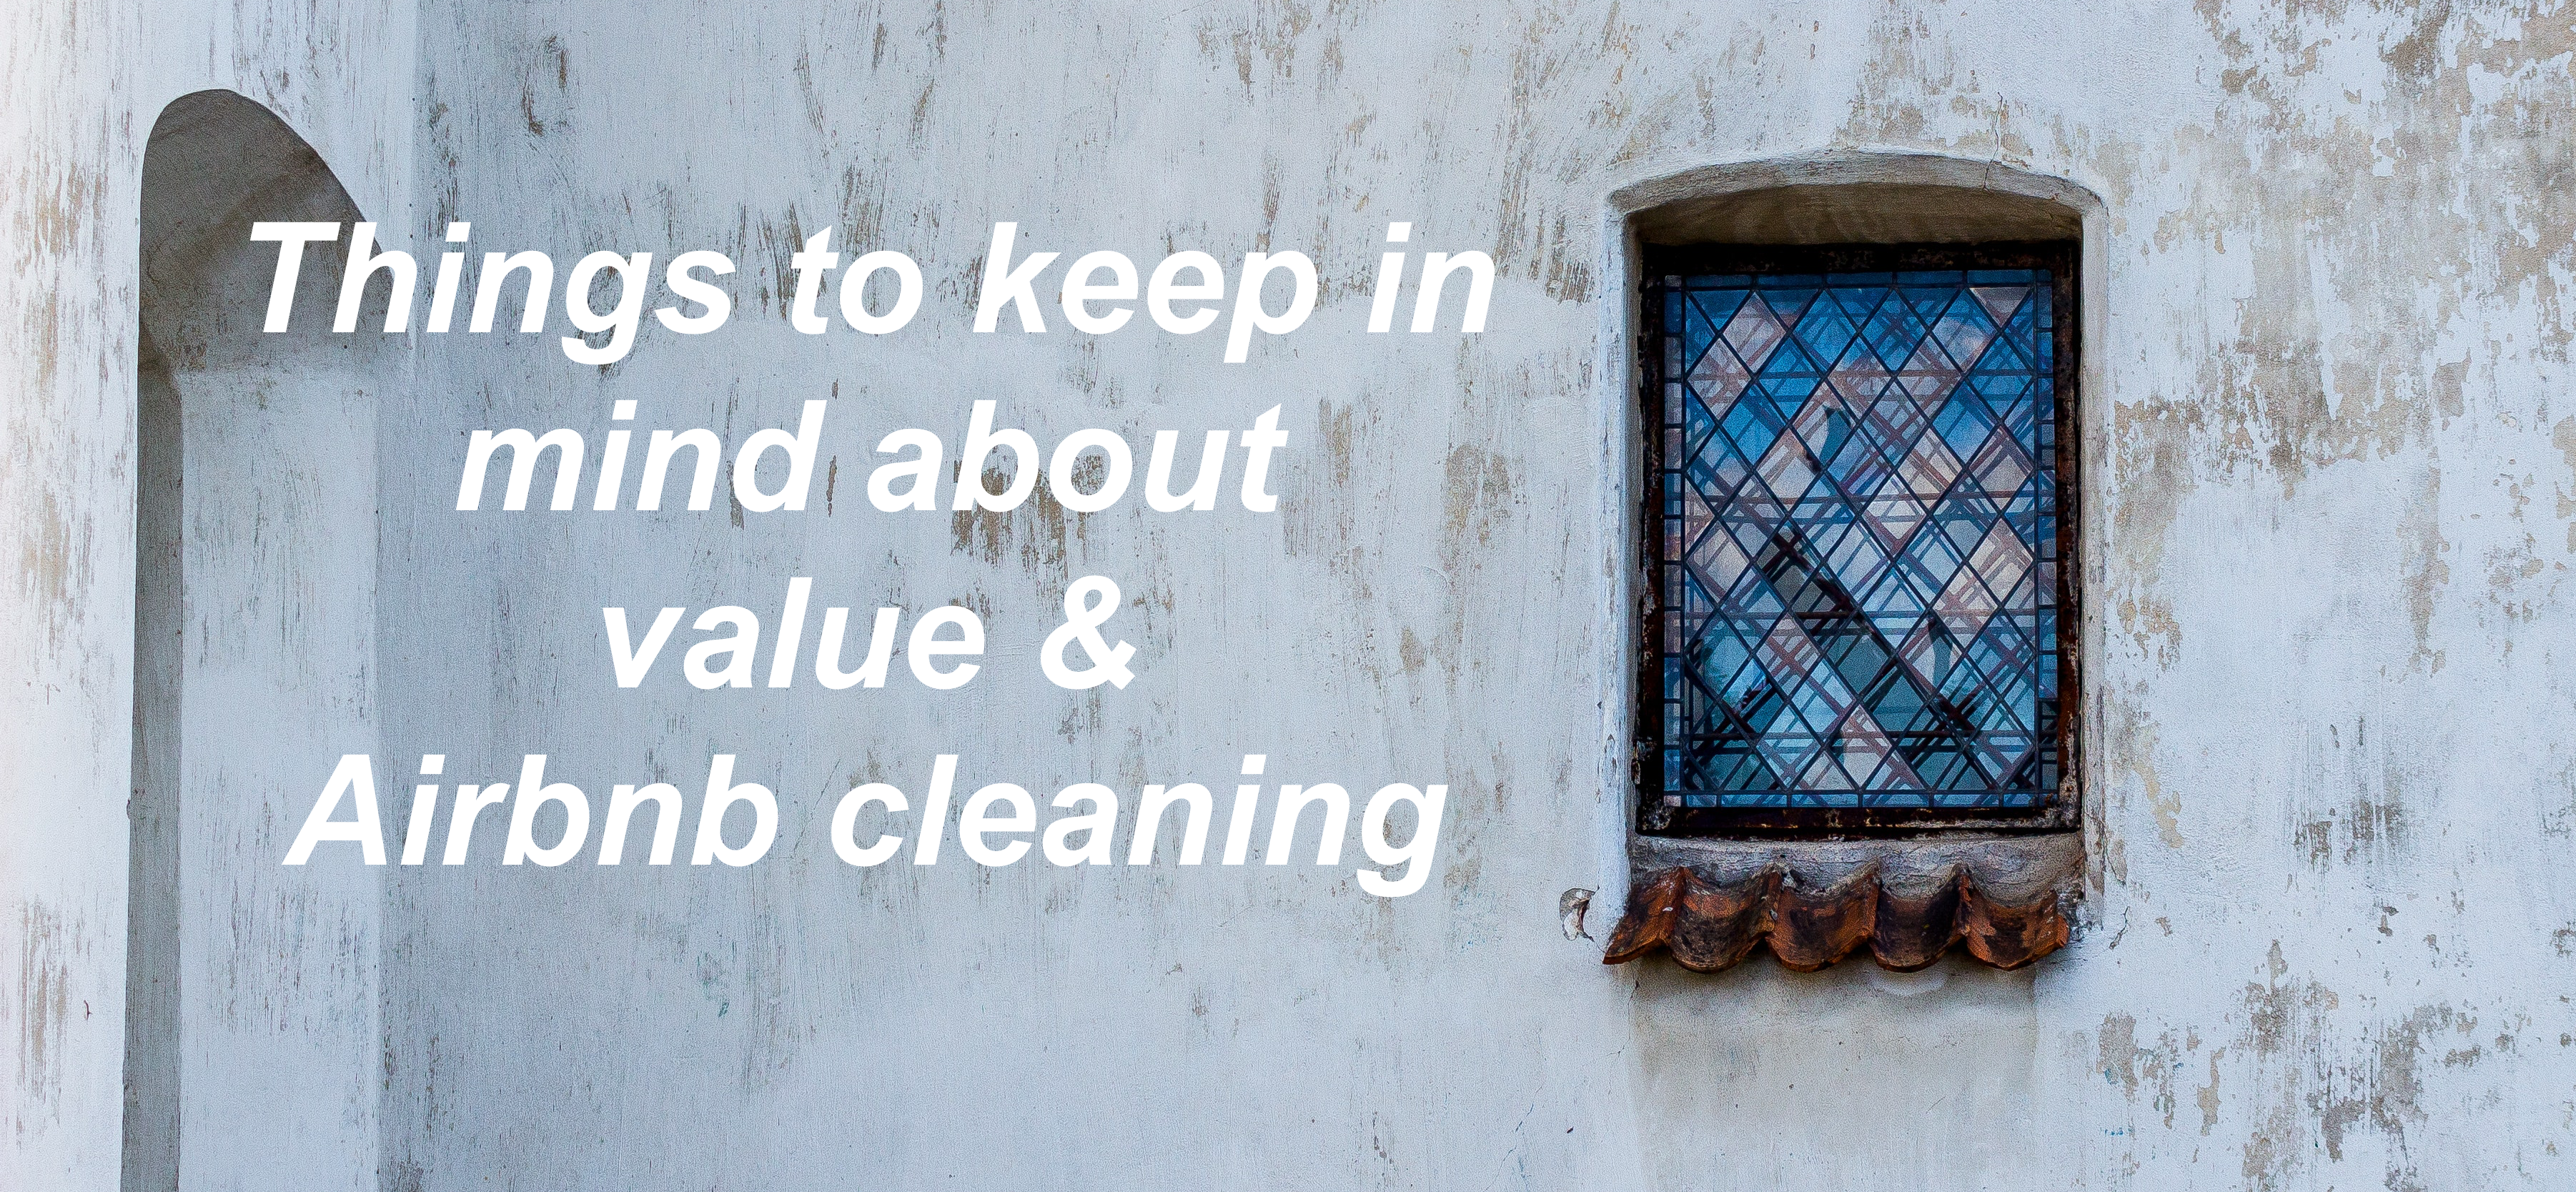 things to keep in mind about value and airbnb cleaning